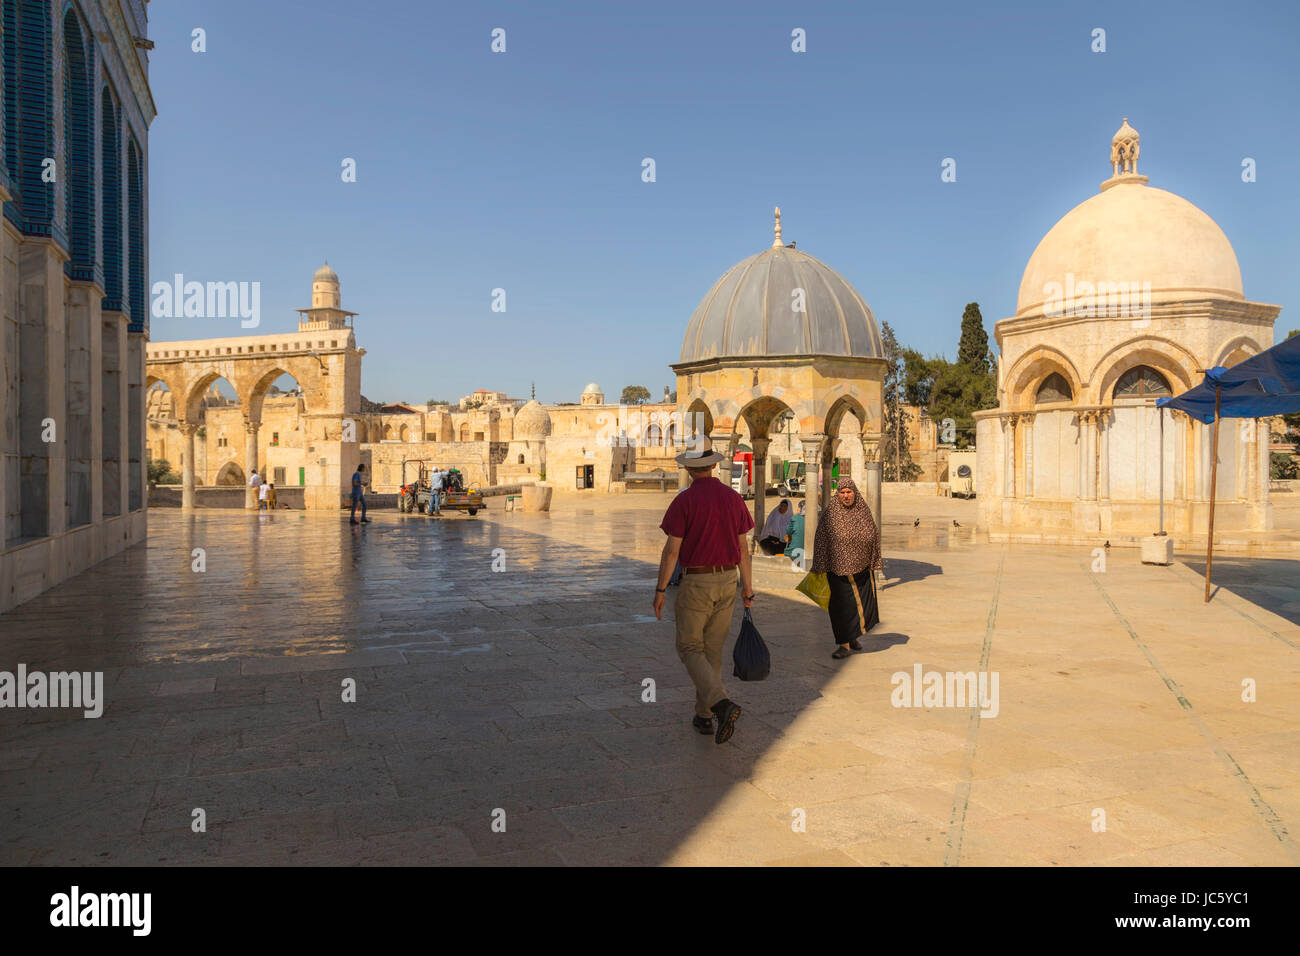 Dome of the Rock and dome-shaped buildings on Temple Mount,  Mount Moriah, Old City of Jerusalem, a UNESCO World - Stock Image